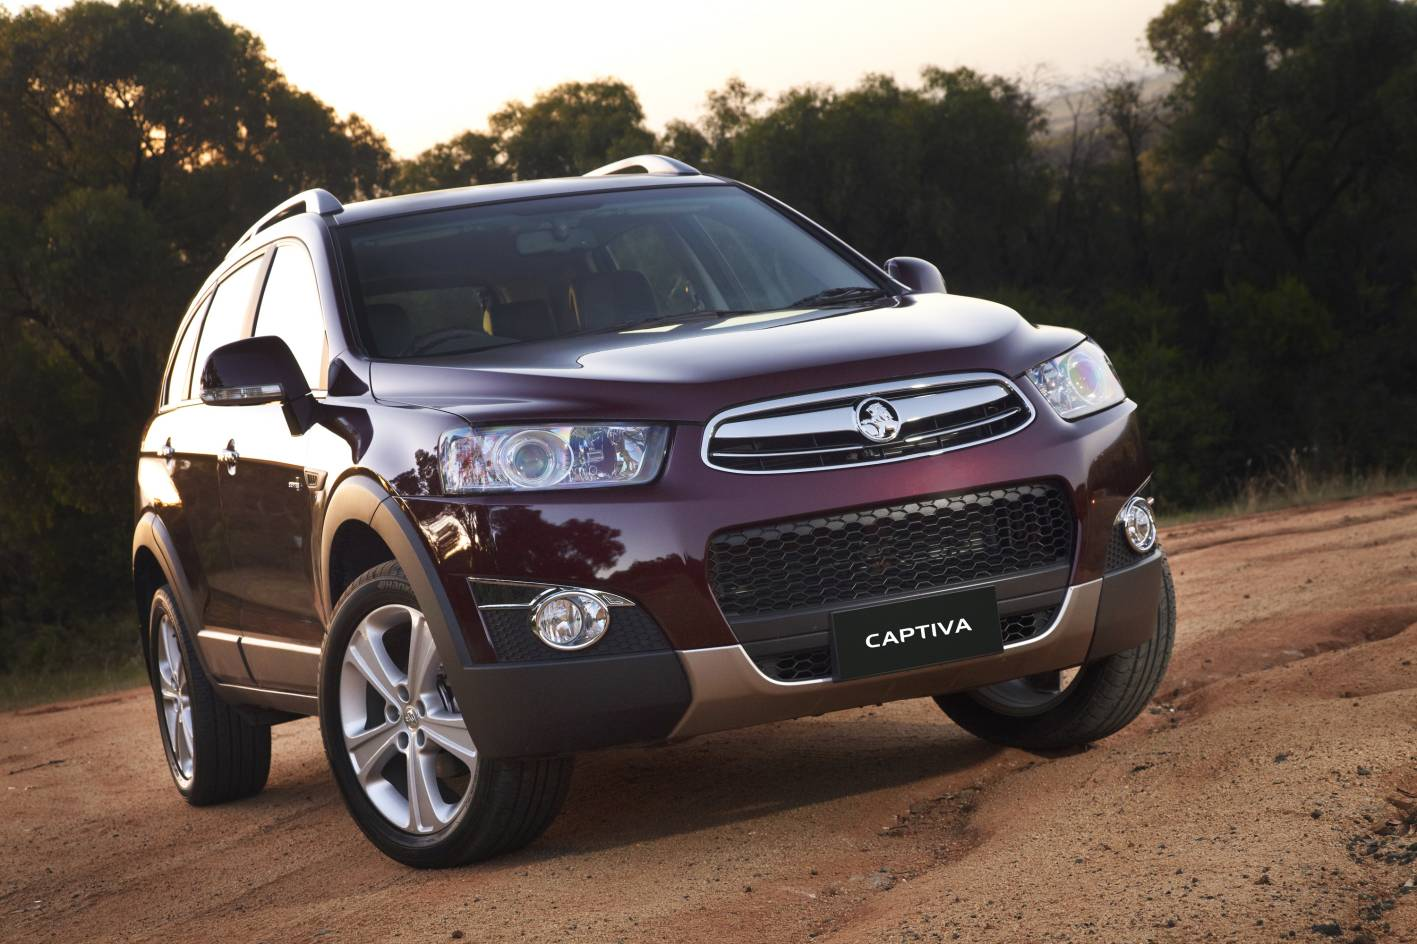 medium resolution of john what are your thoughts on the holden captiva ltz i am looking at a mid size suv with 7 seat capability which will be seldom used